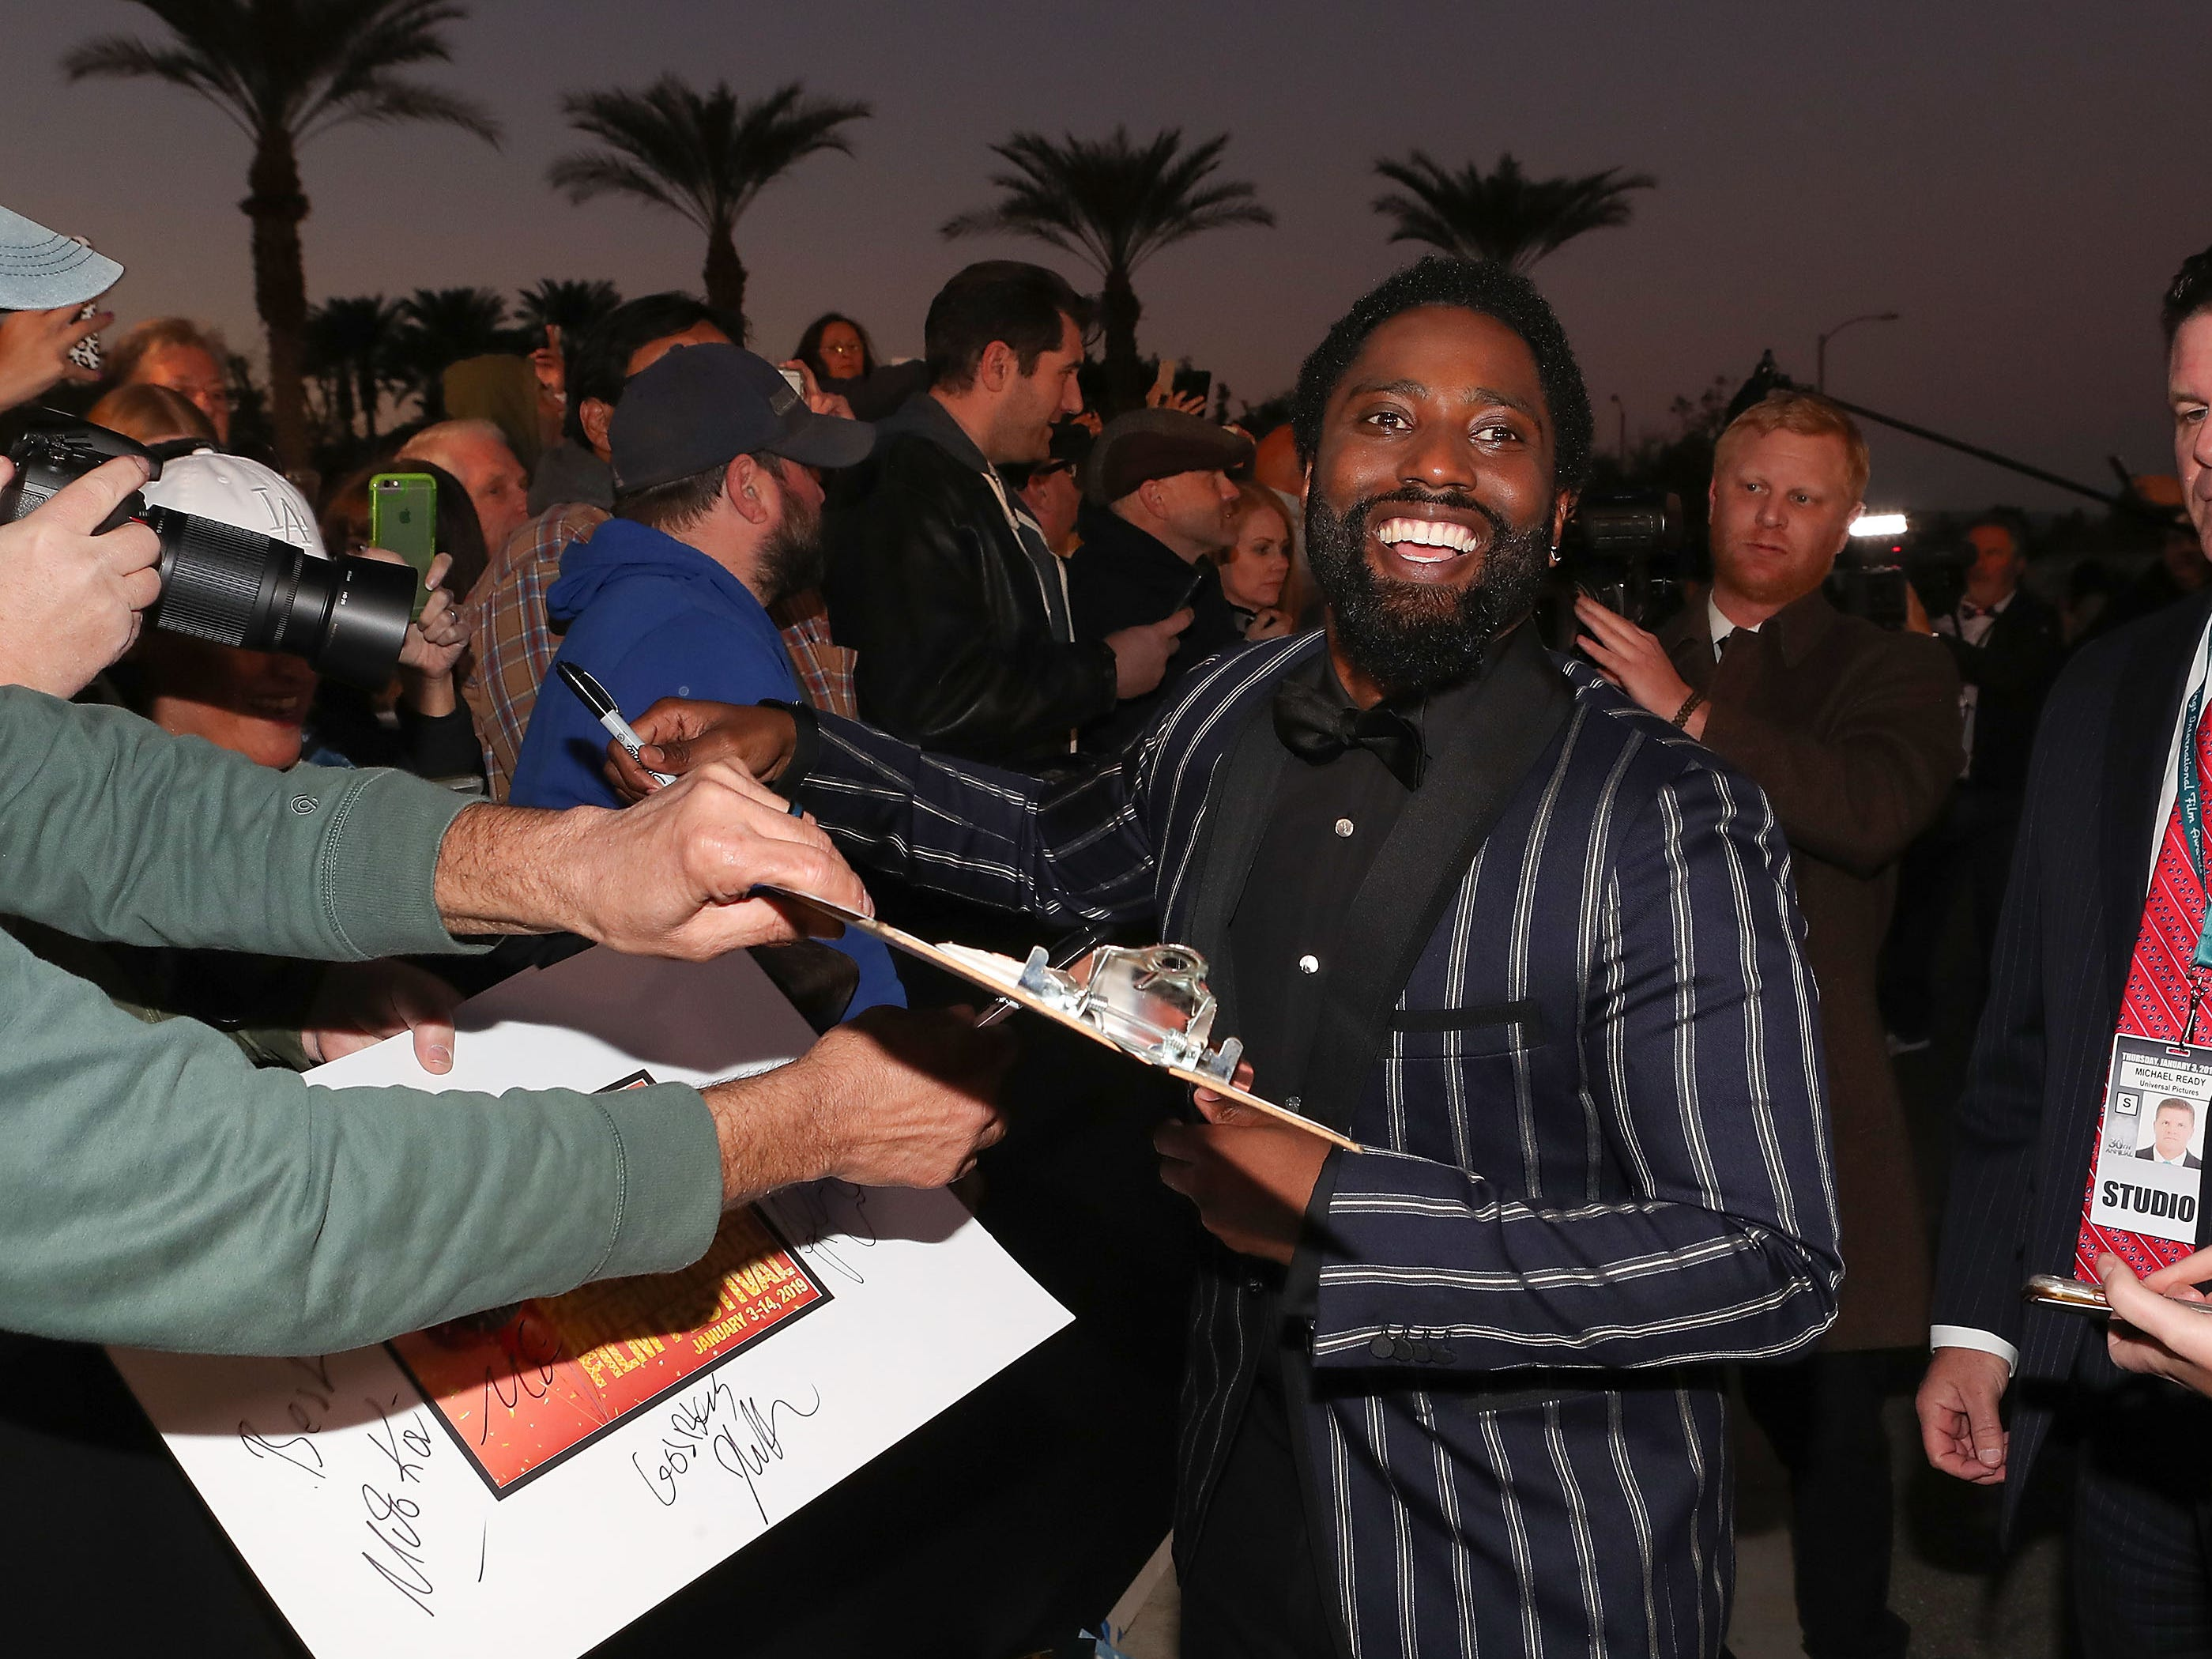 John David Washington signs autographs for fans at the Palm Springs International Film Festival Awards Gala, January 3, 2019.